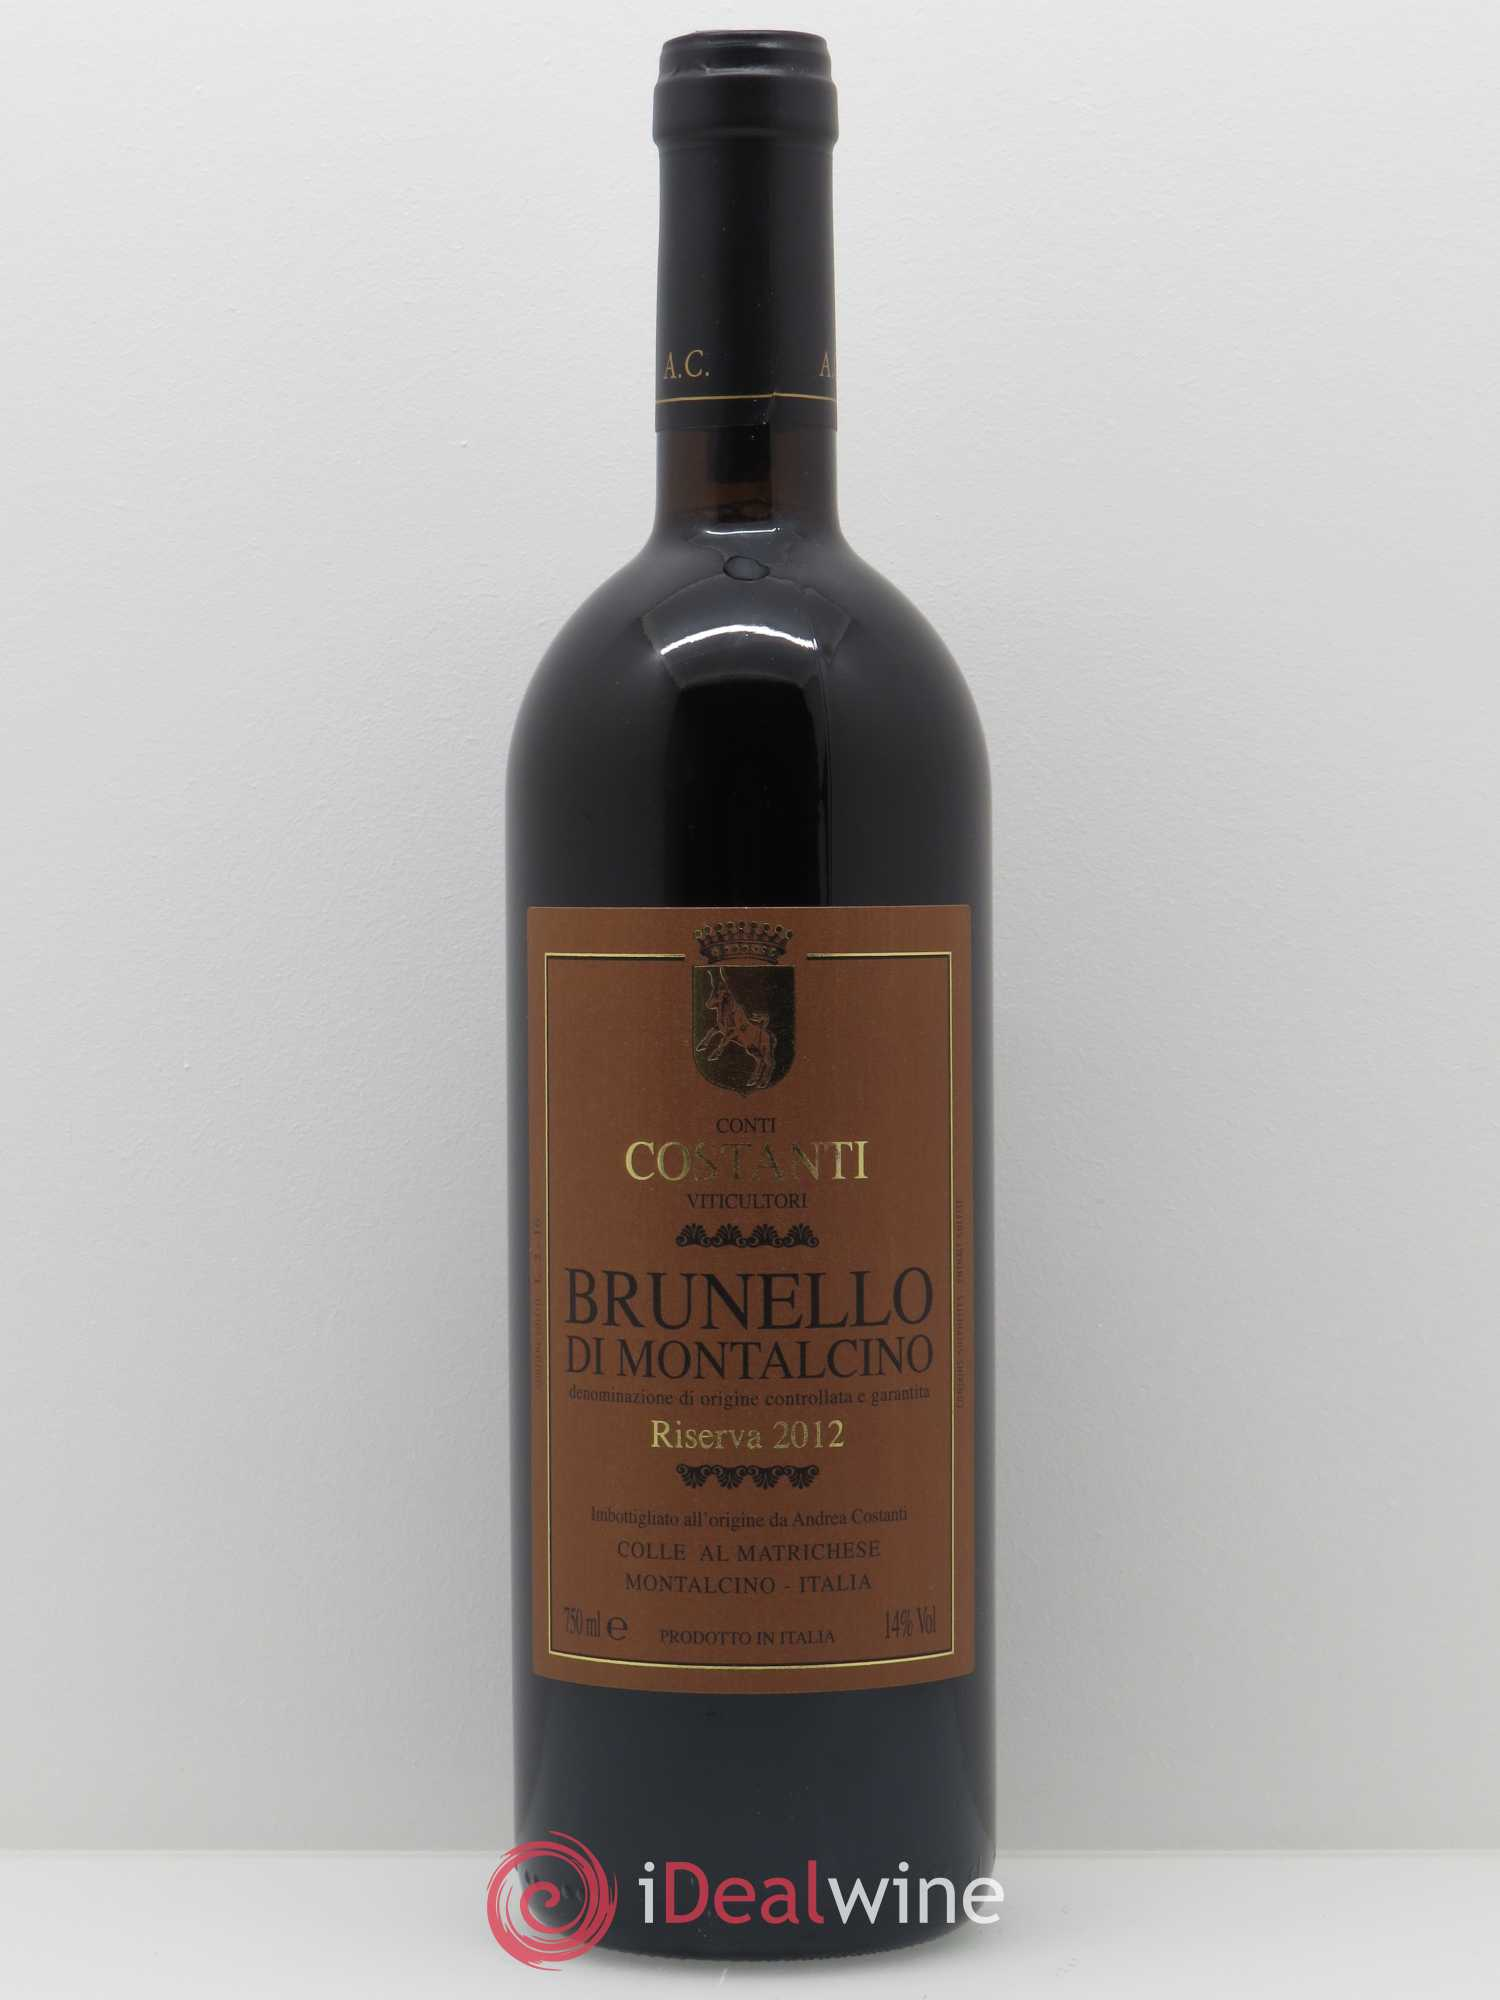 Brunello di Montalcino Conti Costanti Riserva  2012 - Lot of 1 Bottle